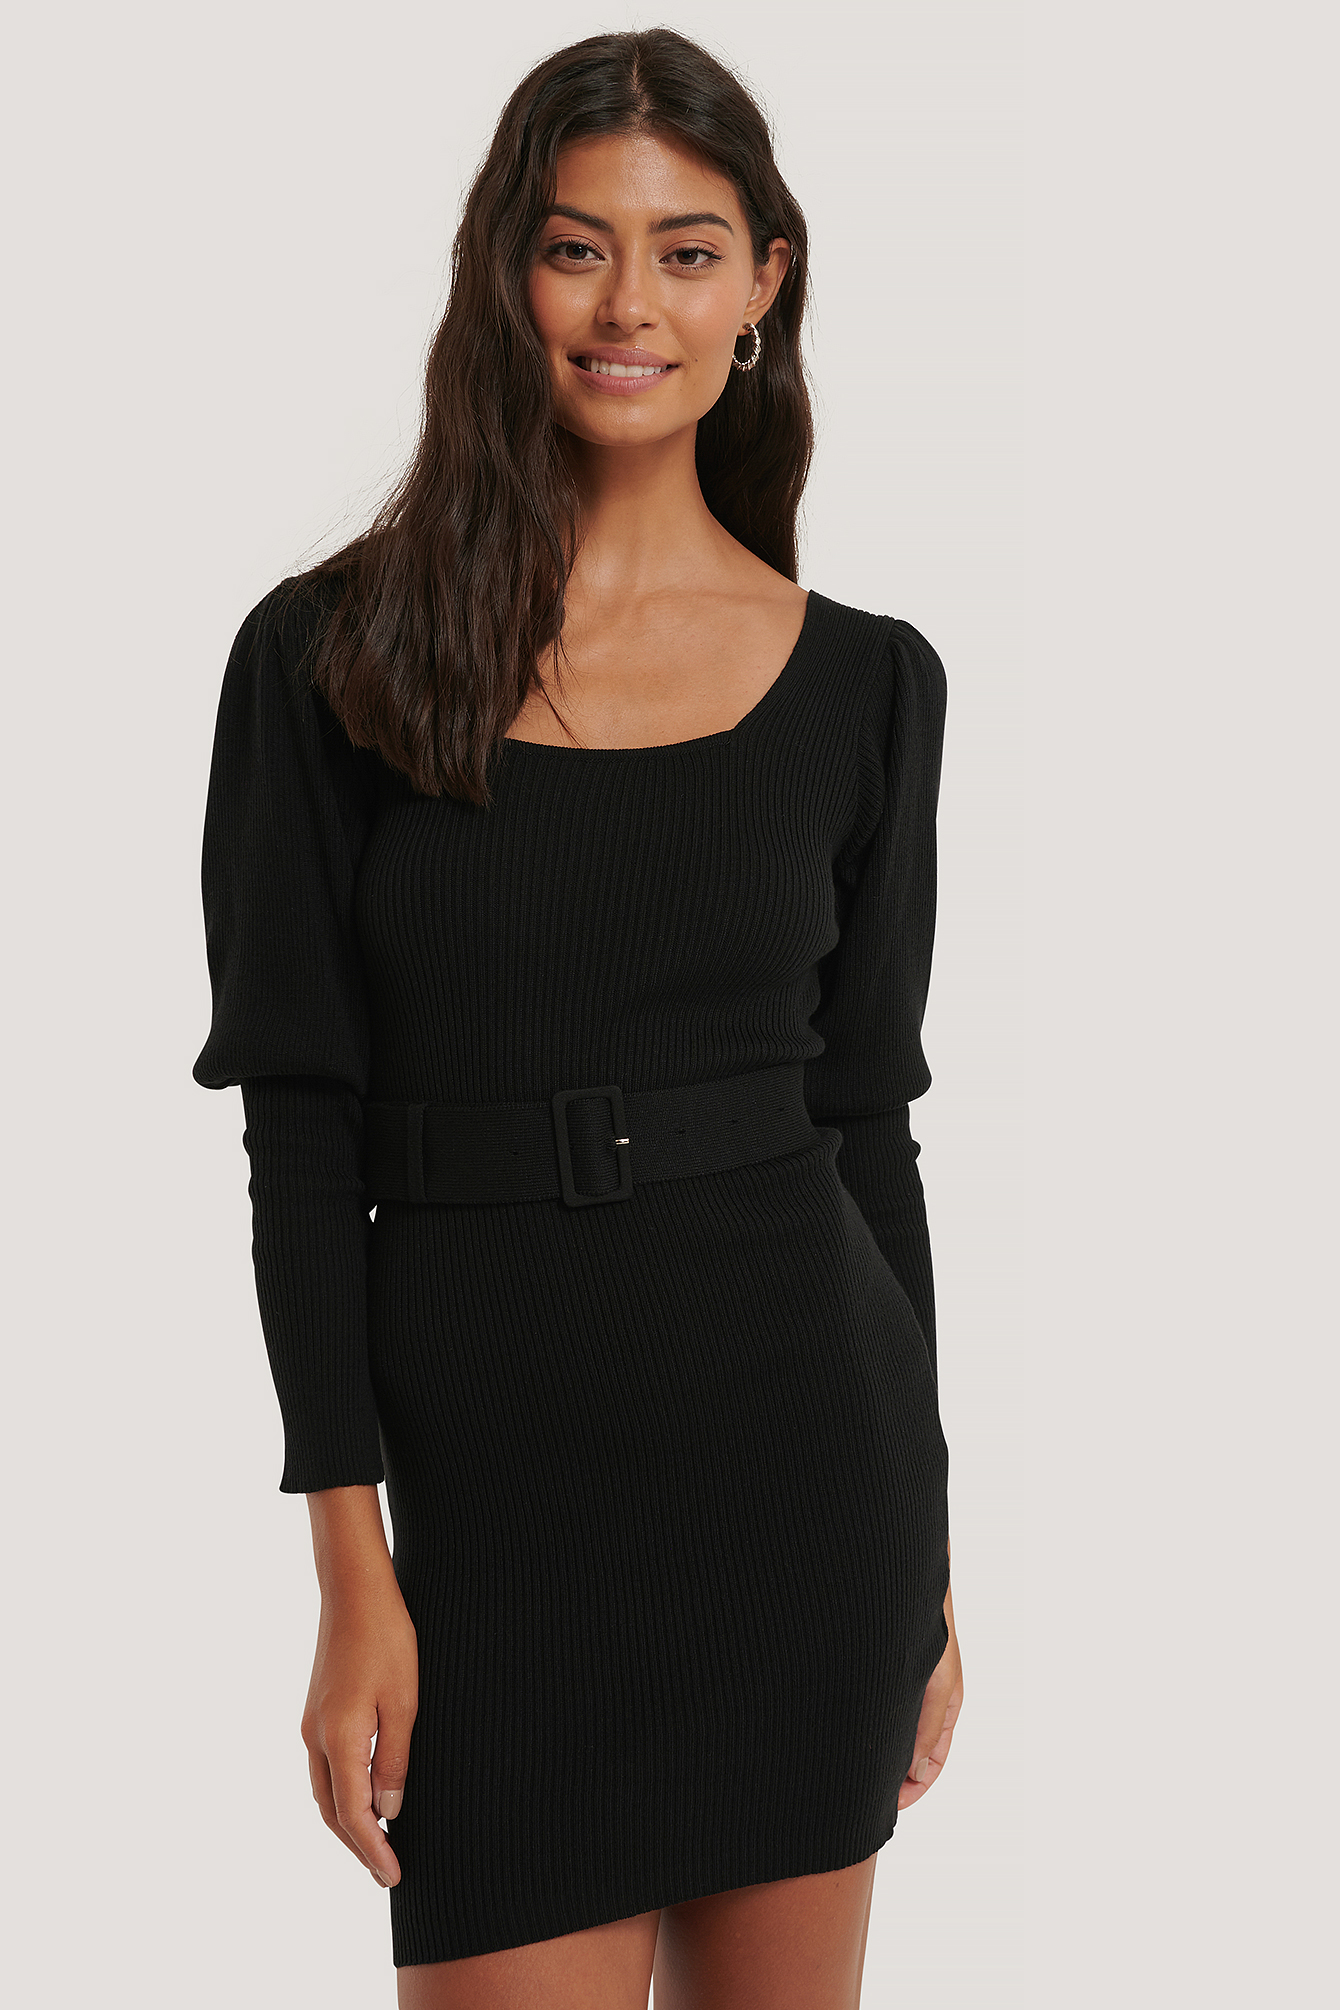 Black Puff Sleeve Knitted Dress